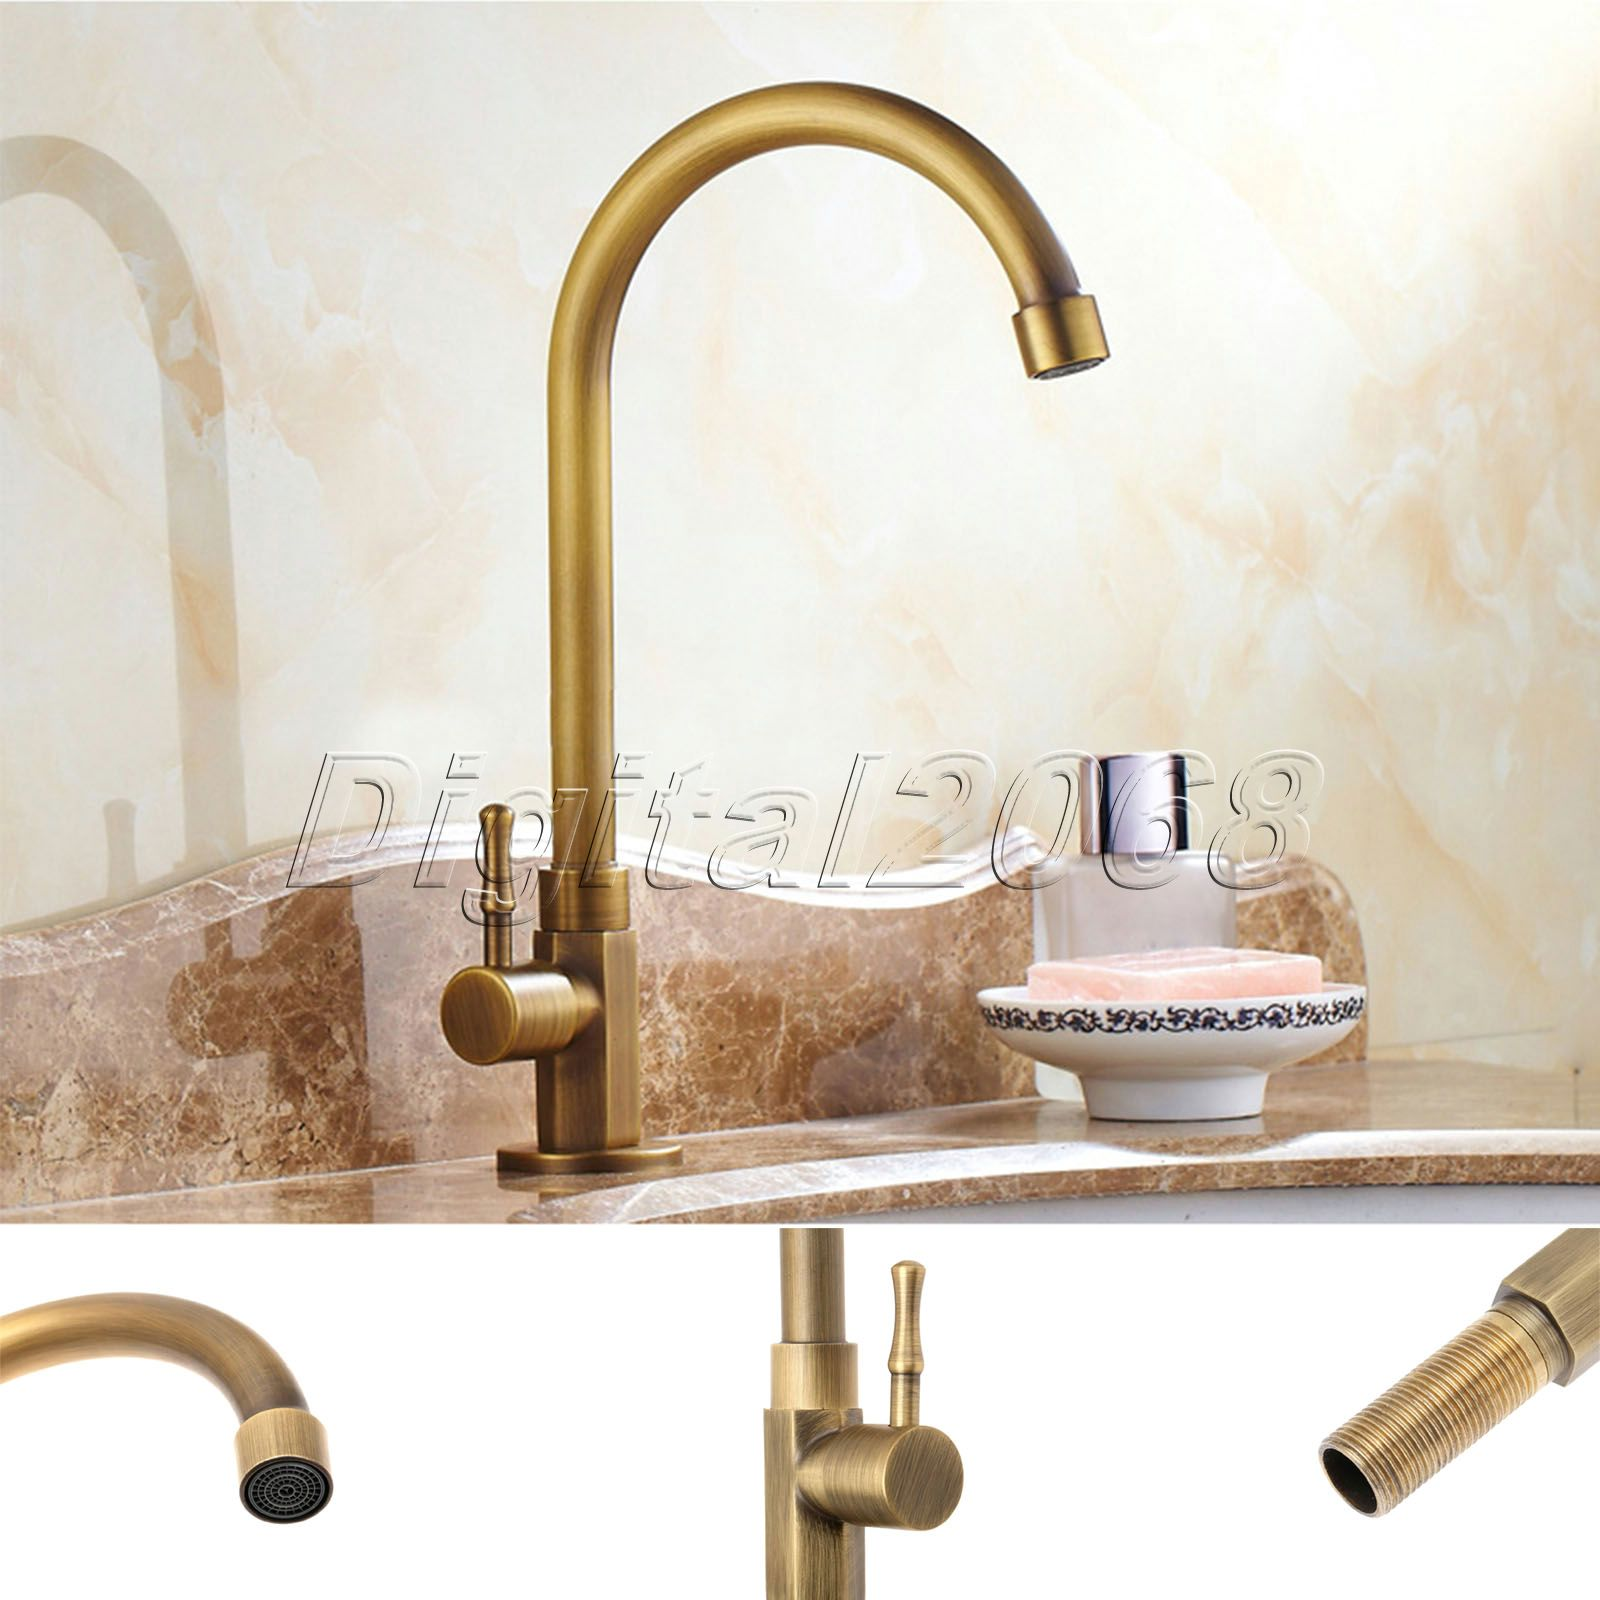 Brass Antique Luxury Bathroom Kitchen Sink Faucet Ceramic Valve Single Handle Swivel Spout Faucets Vessel Mixer Water Tap 55 antique brass swivel spout dual cross handles kitchen